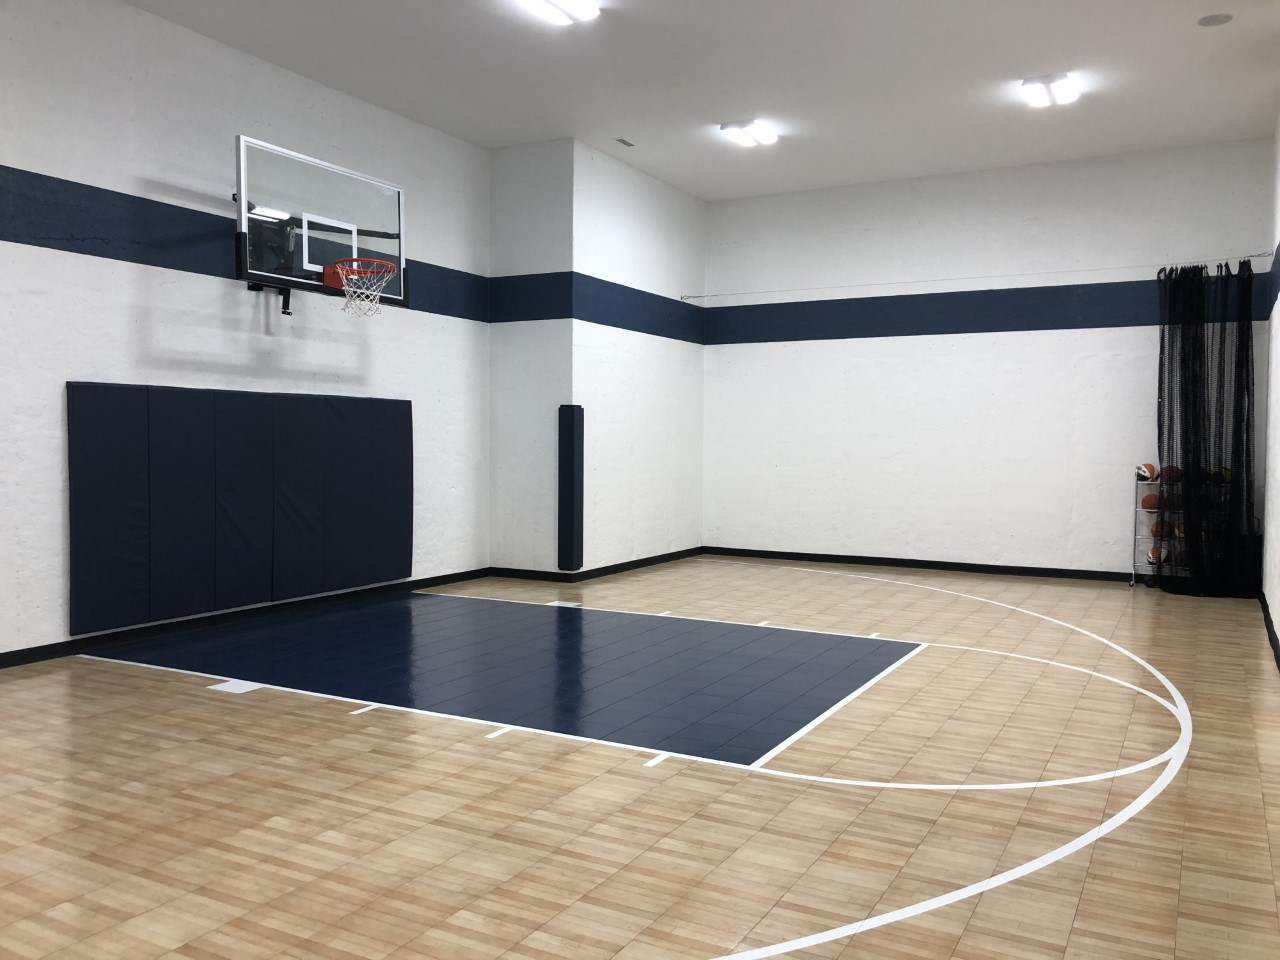 "1130 SF Game Court featuring SnapSports athletic tiles in Light Maple Tuffshield with a Navy Revolution Tuffshield lane, white basketball lines, 72"" Gladiator basketball hoop, nave wall and corner pads and black cove base"